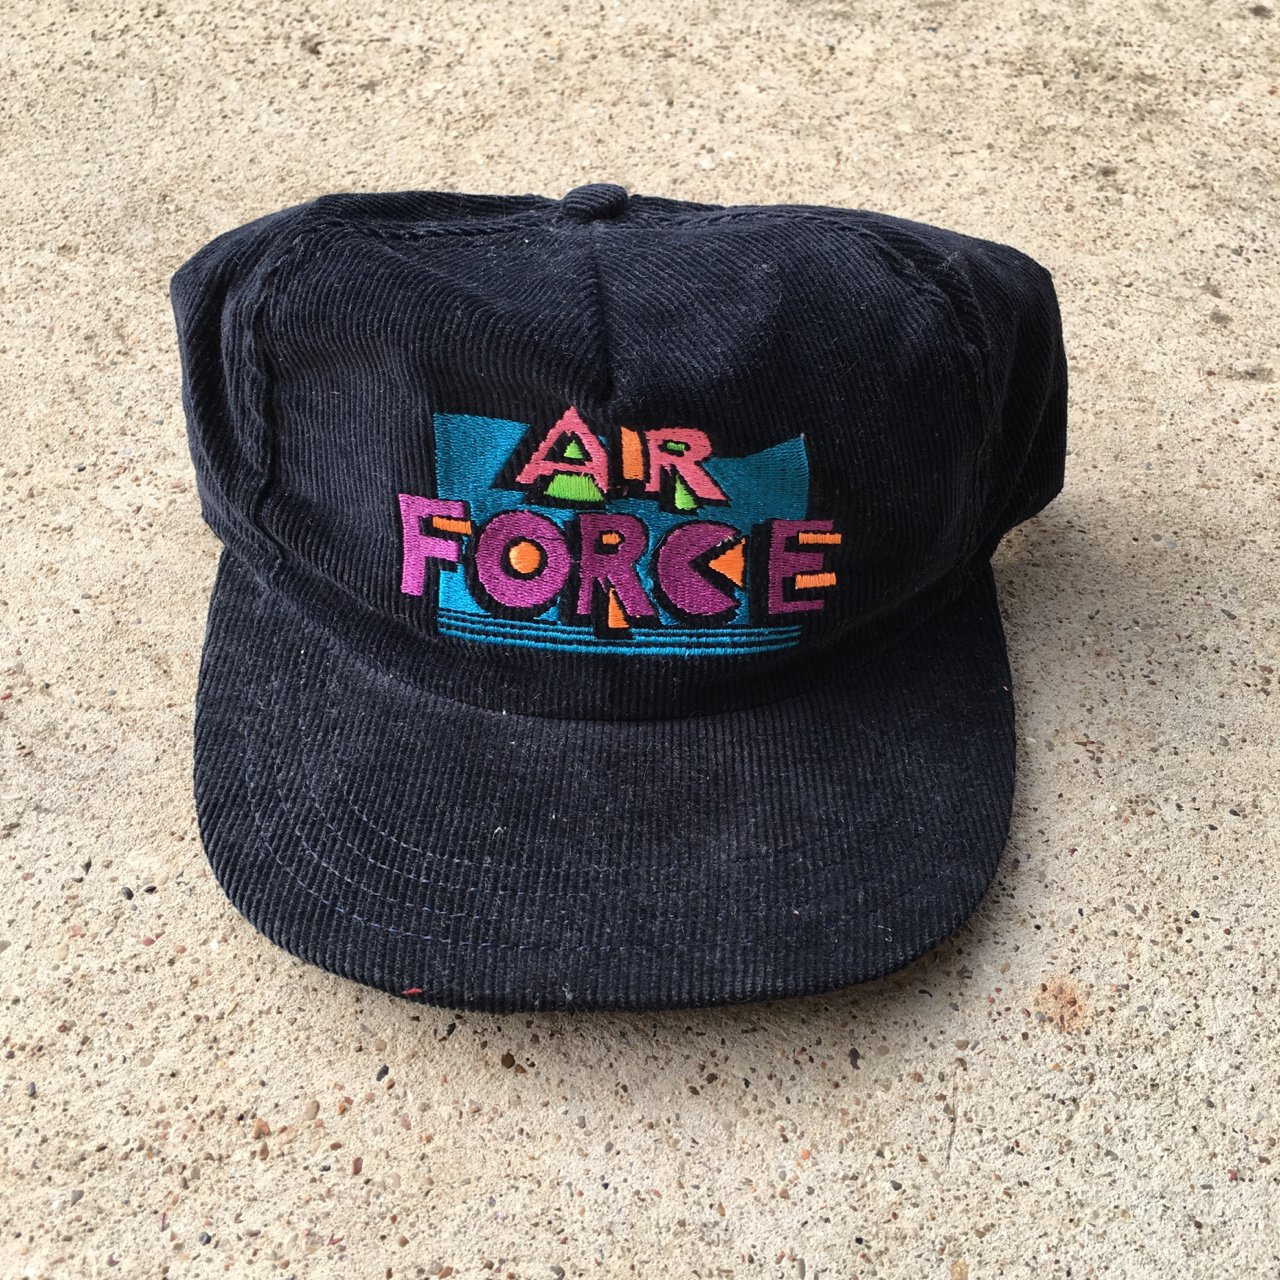 Vintage corduroy SnapBack cap in great condition could use a - Depop 2981d3e513b